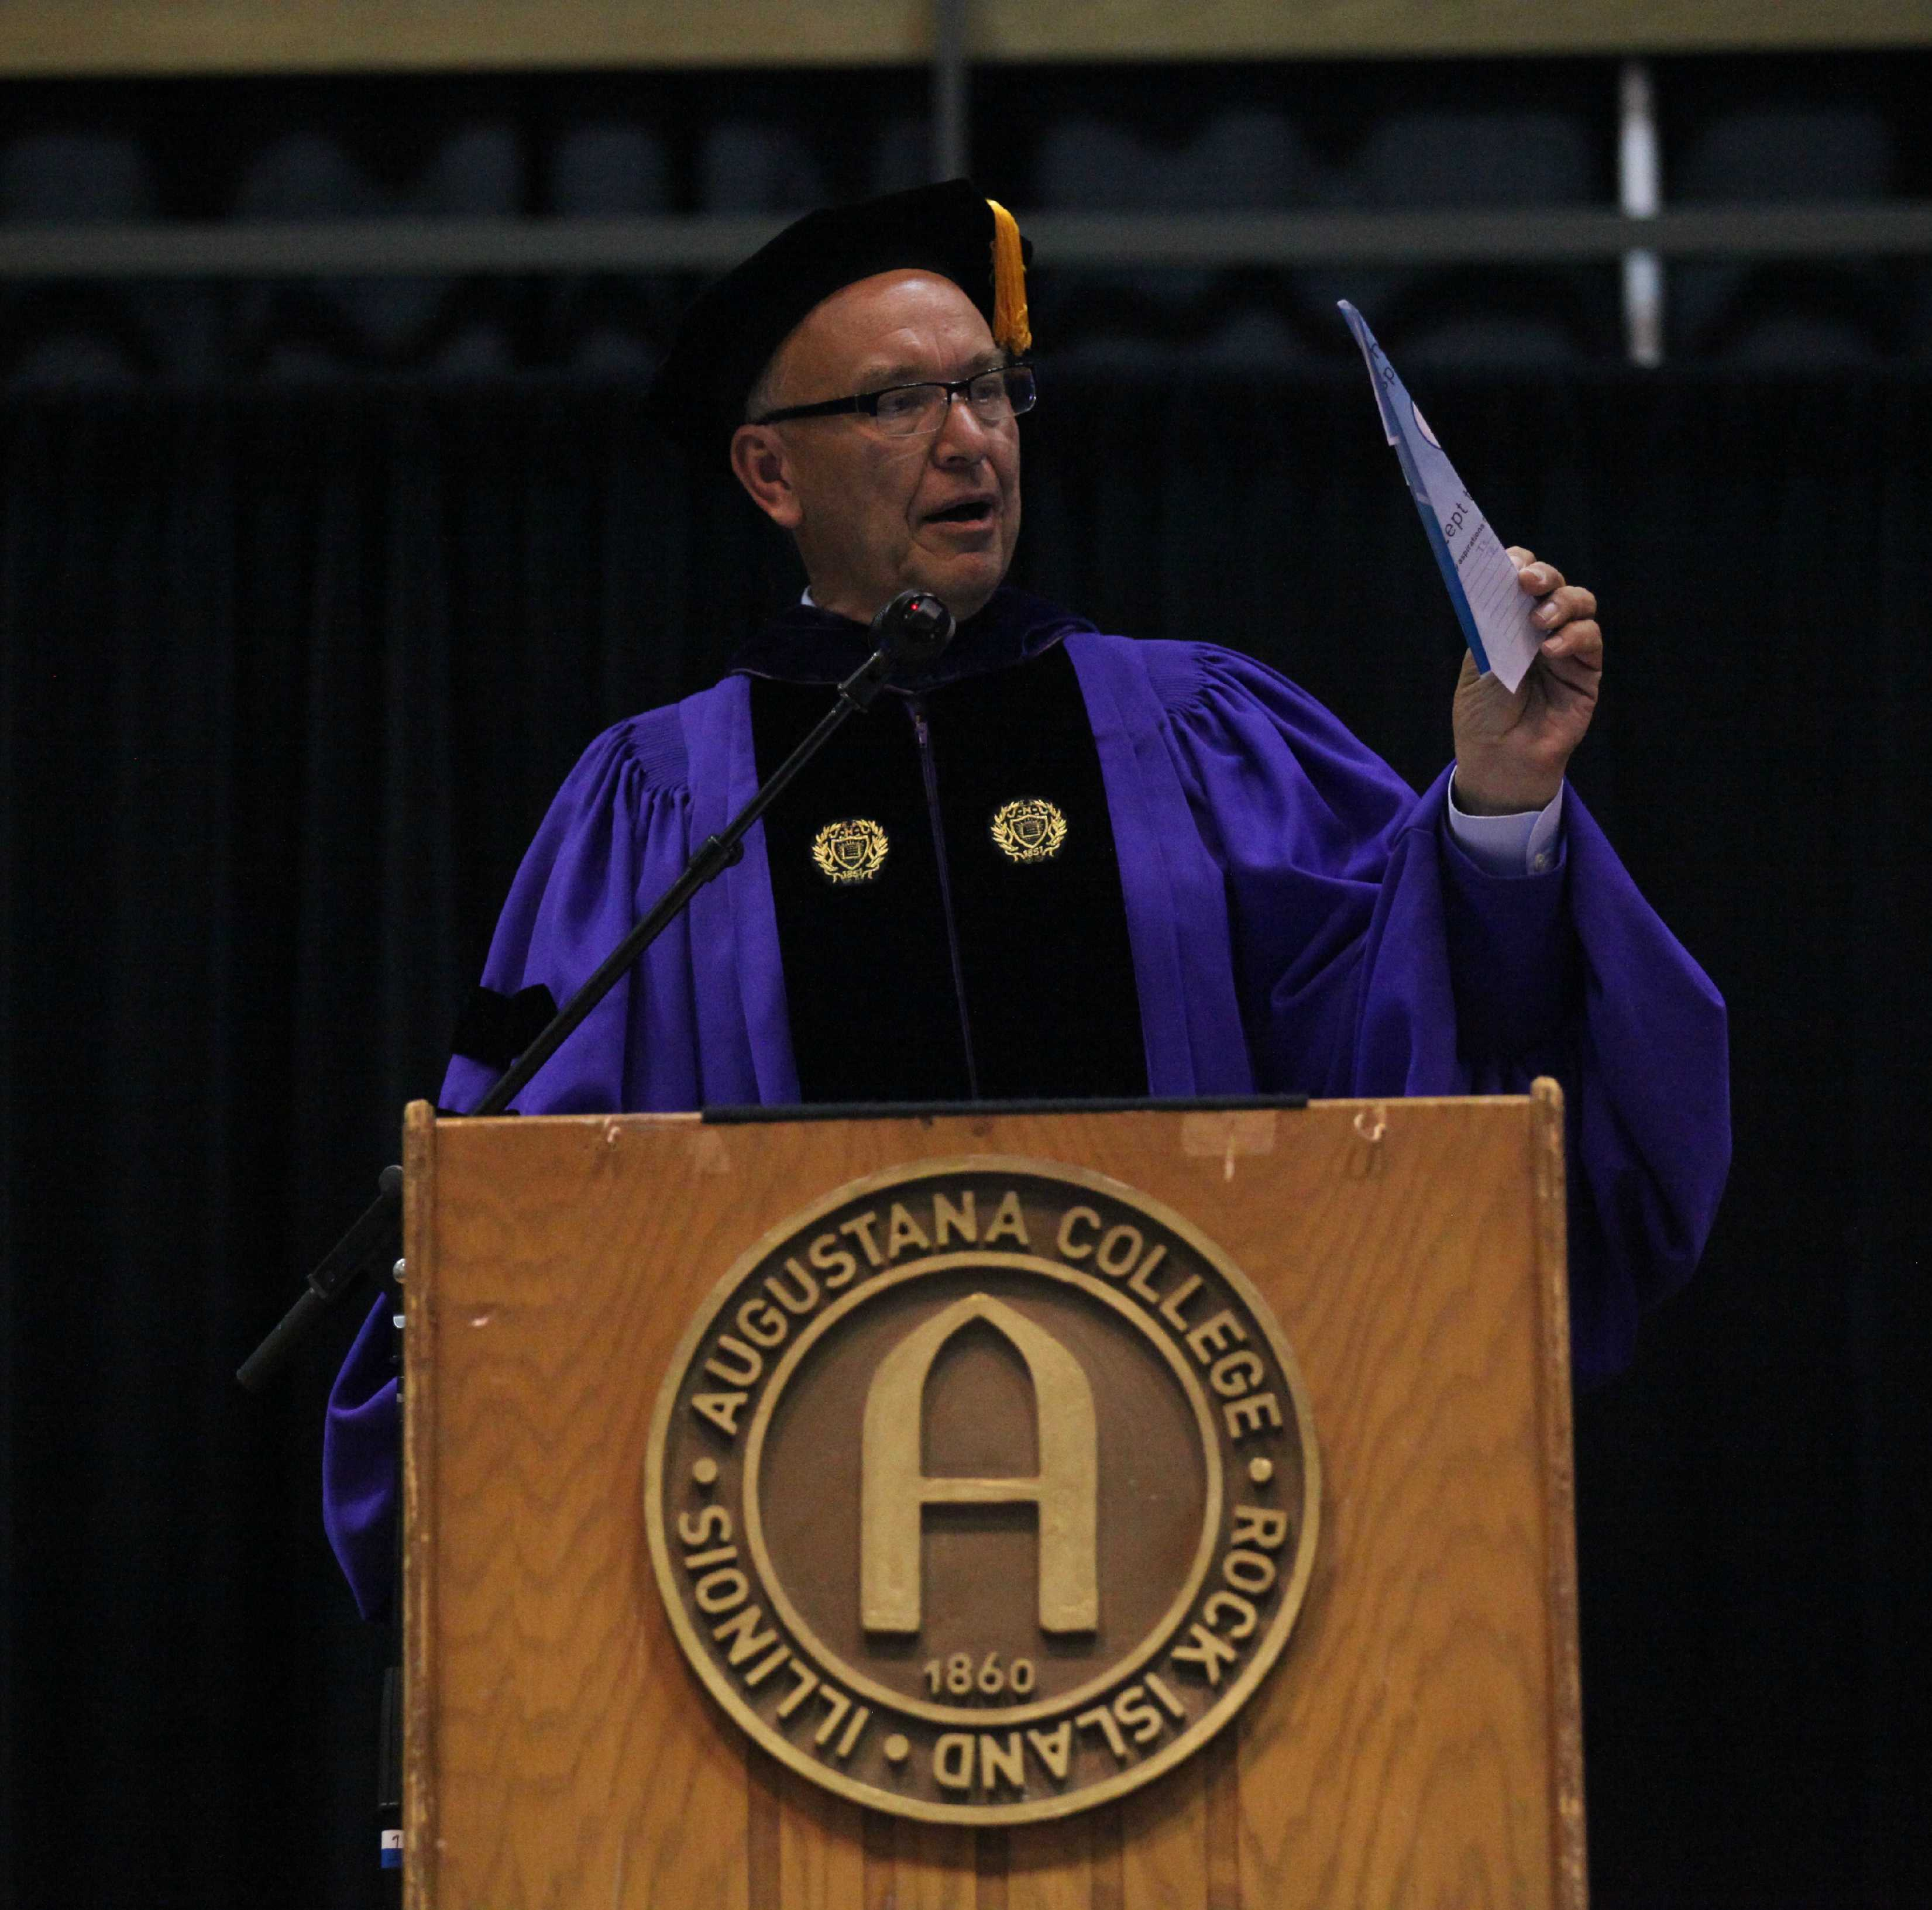 President Steven Bahls presents his paper airplane at the 2015 opening ceremony in Carver. File Photo by Augustana Observer